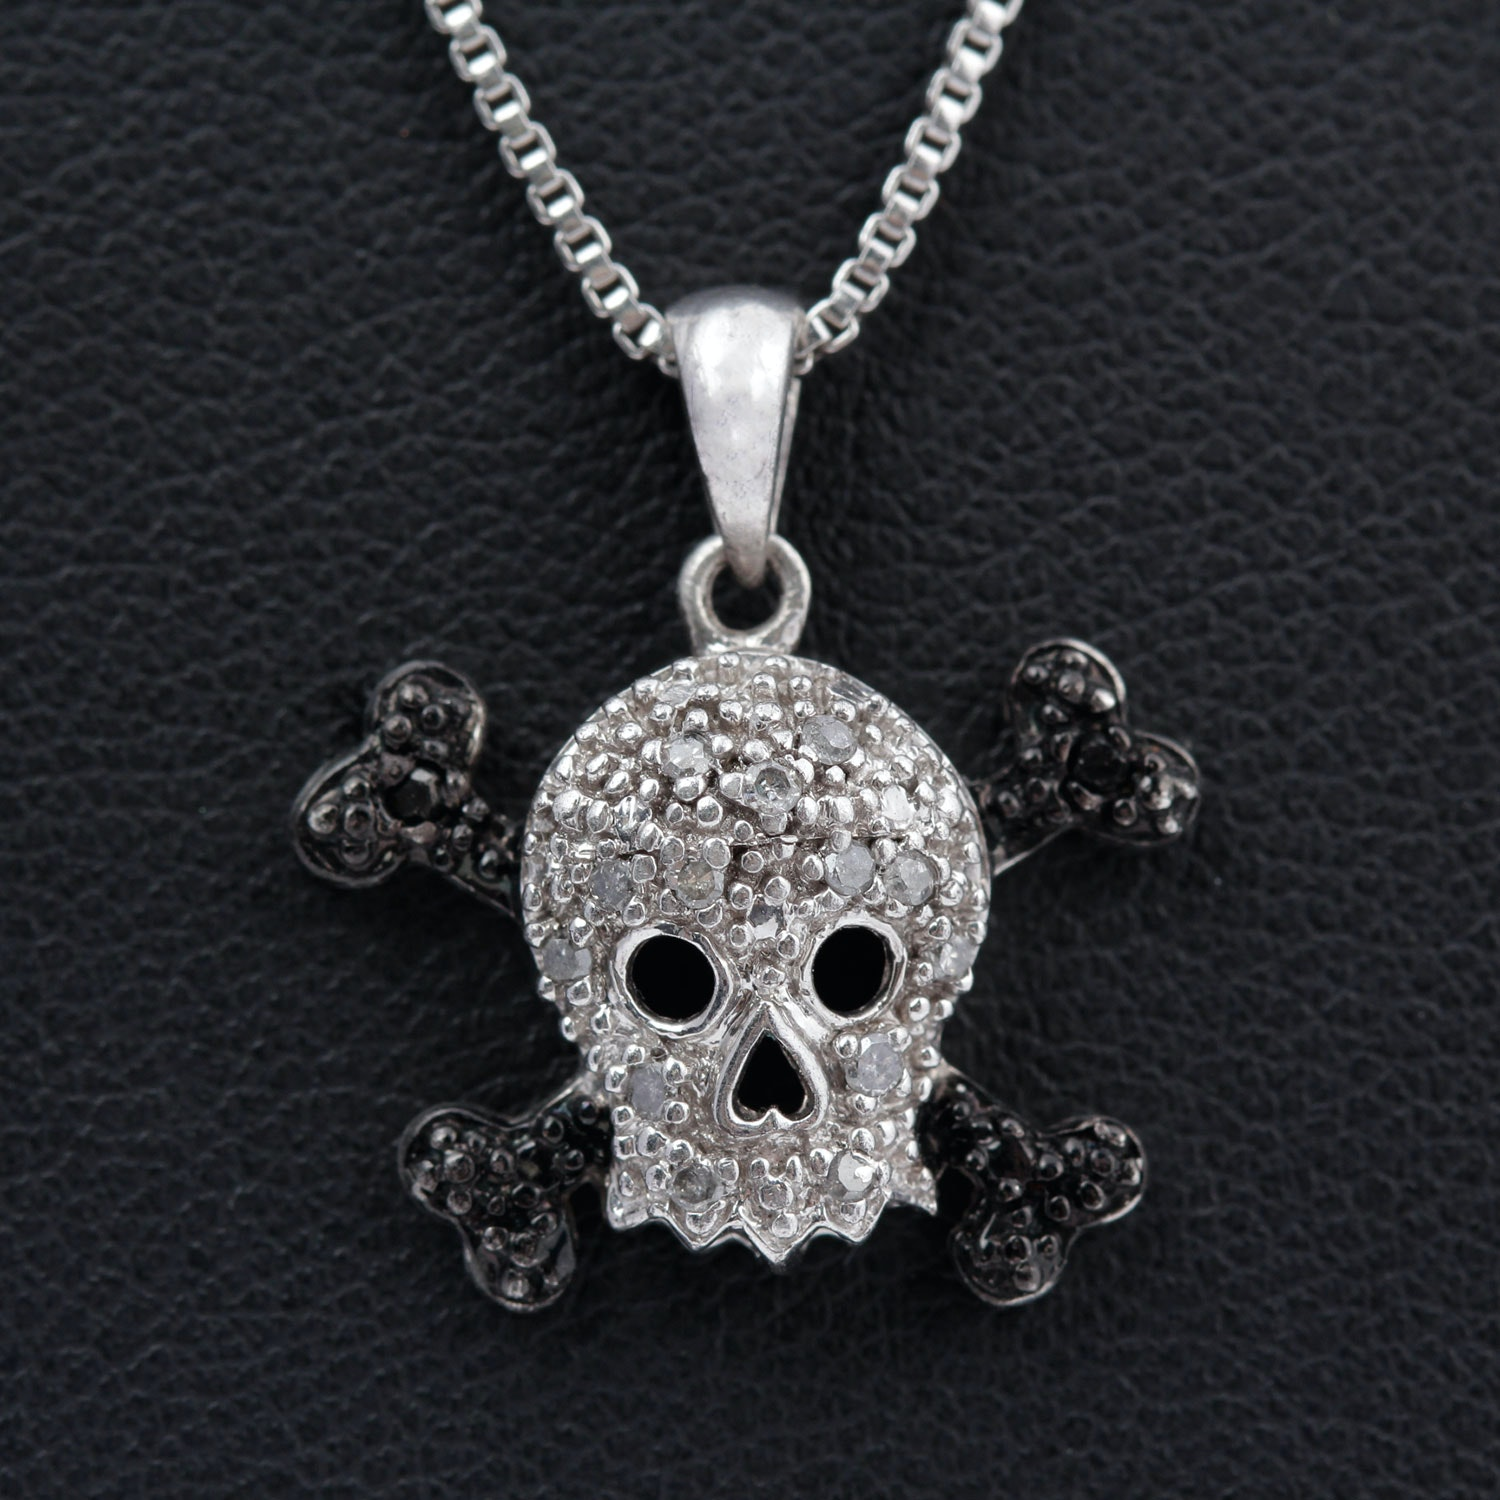 Sterling Silver Black and White Diamond Skull Pendant Necklace